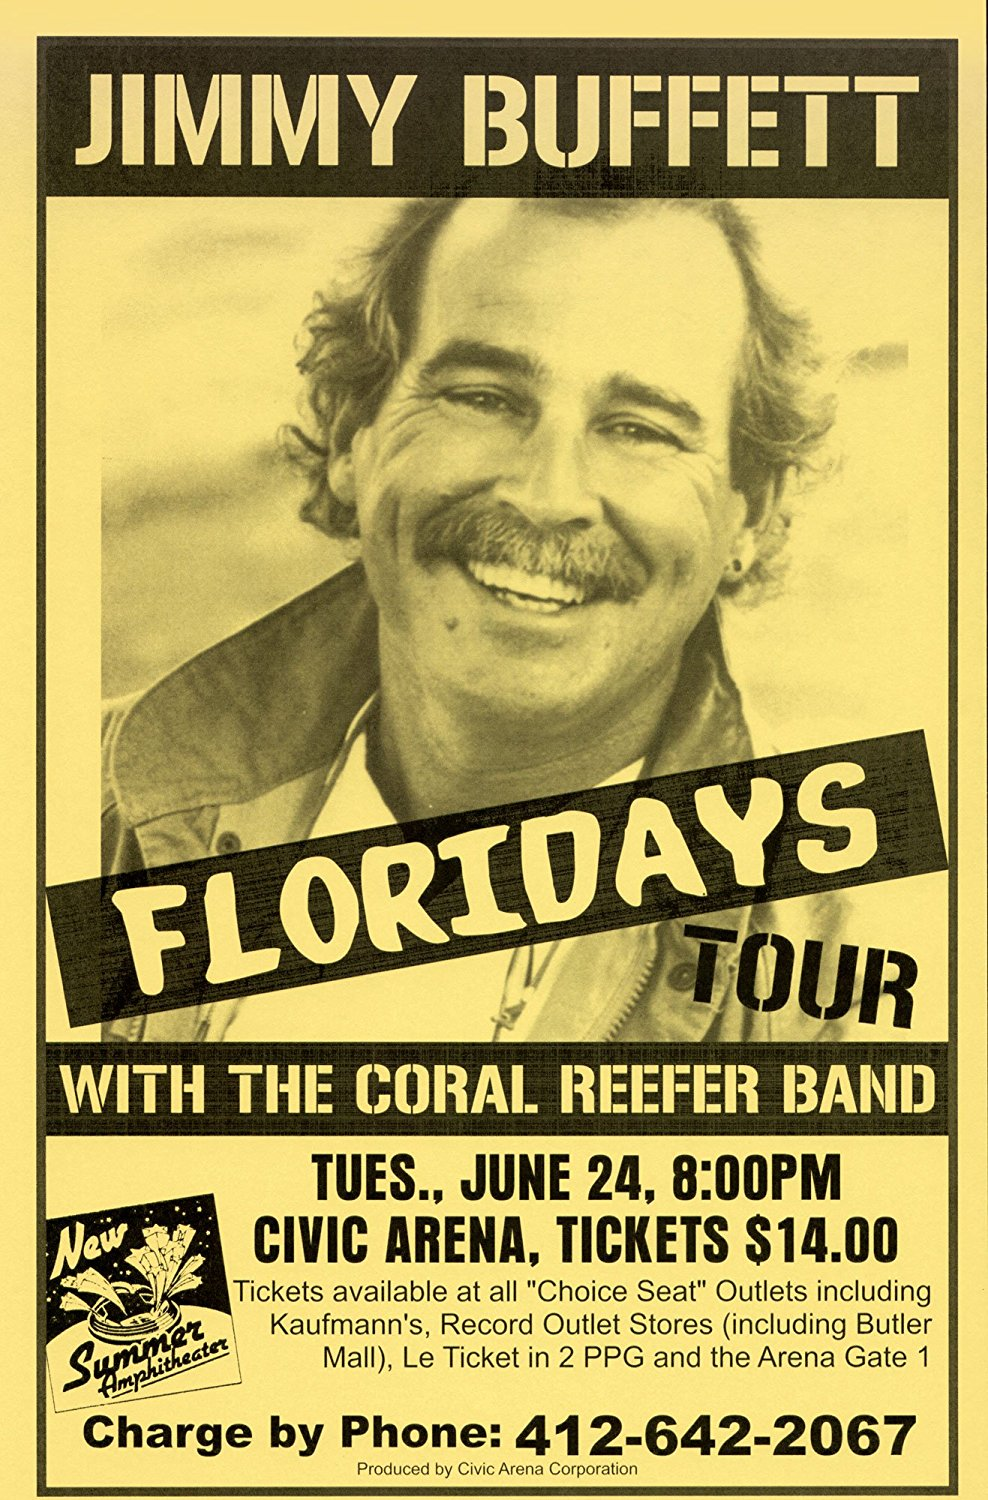 Jimmy Buffett Floriday's 1986 Retro Art Print — Poster Size — Print of Retro Concert Poster — Features Jimmy Buffett and the Coral Reefer Band.